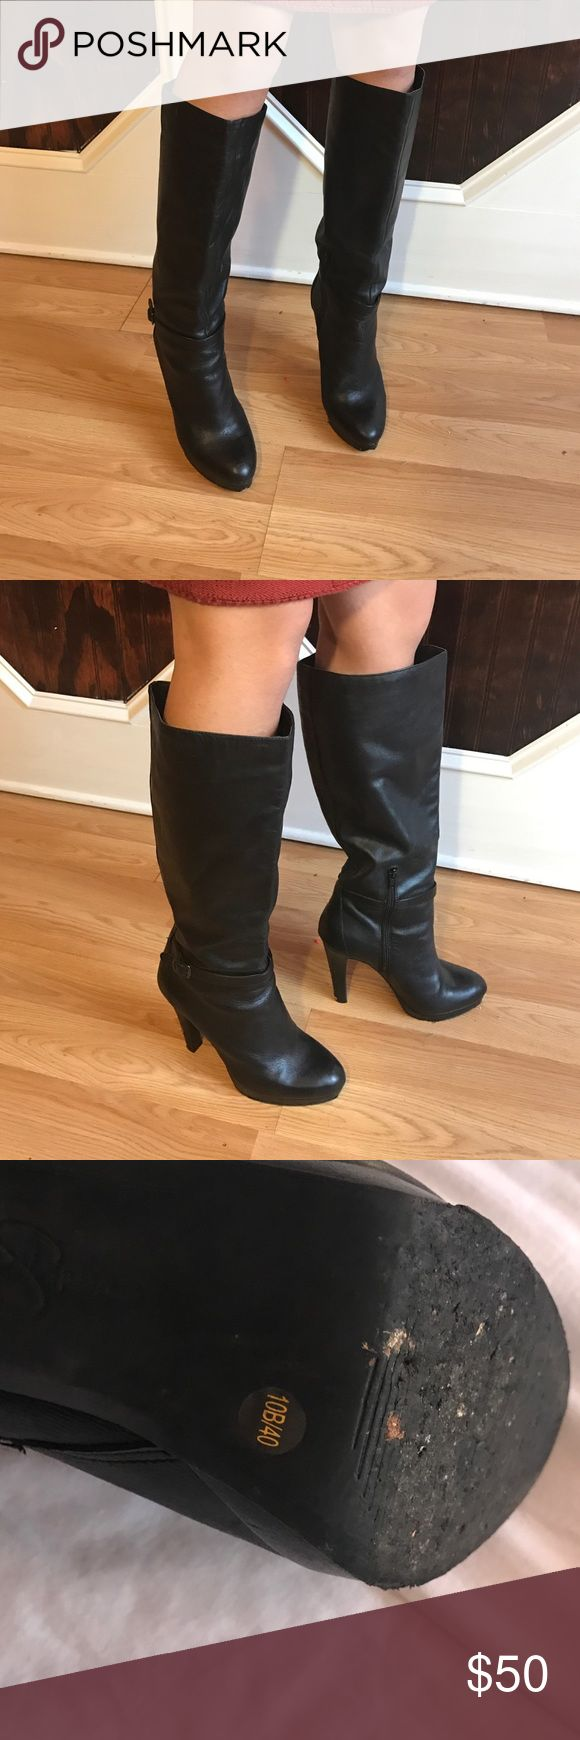 Jessica Simpson boots Great condition , rarely worn Jessica Simpson Shoes Over the Knee Boots